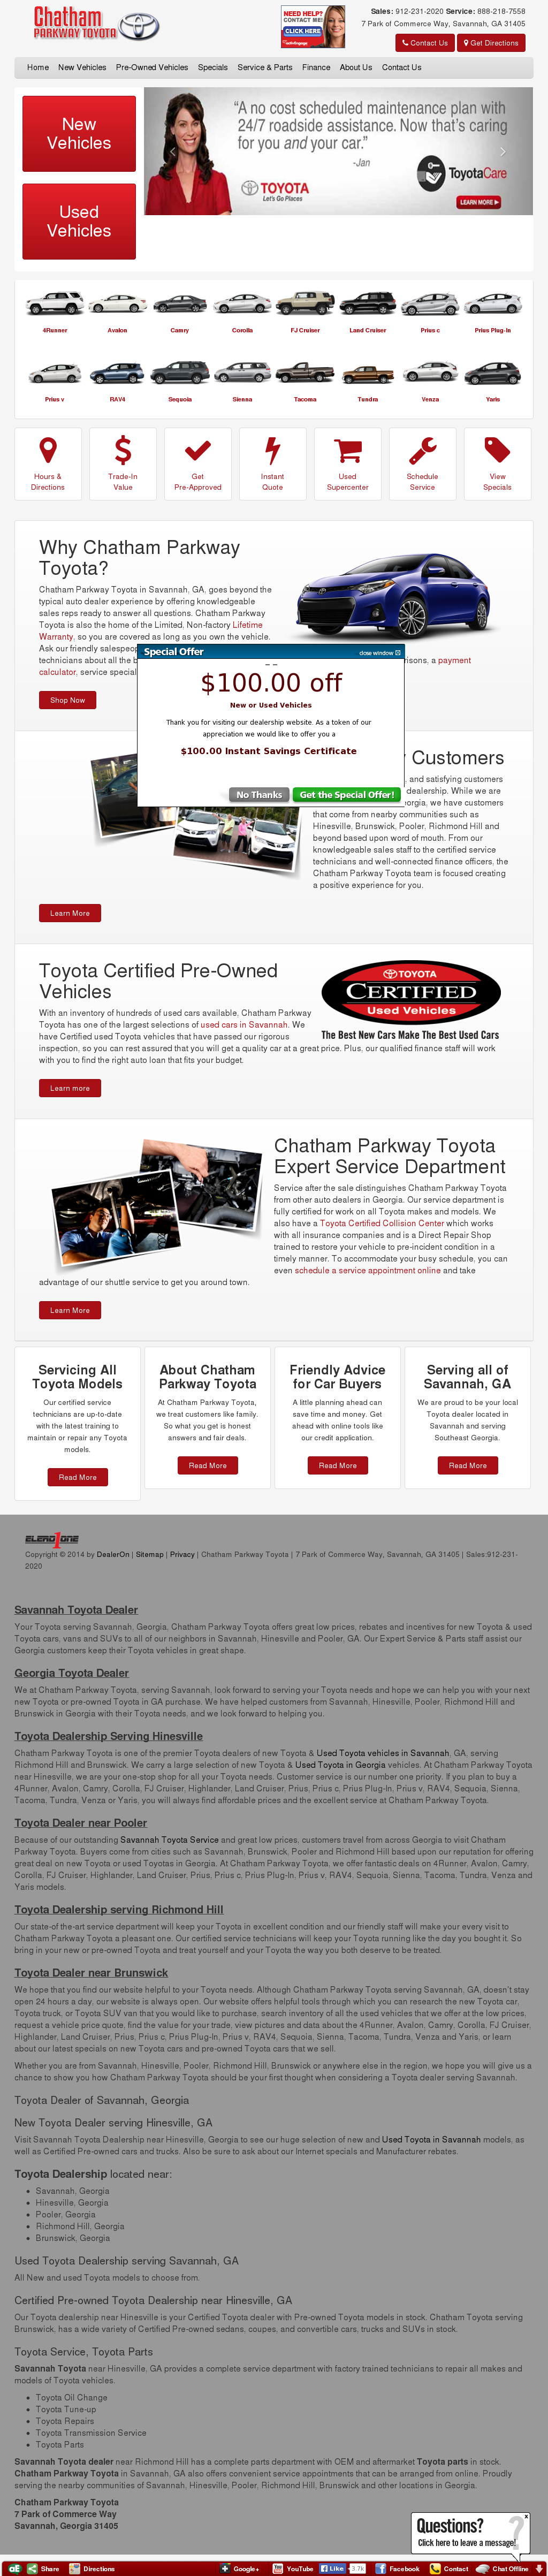 Chatham Parkway Toyota >> Chatham Parkway Toyota Competitors Revenue And Employees